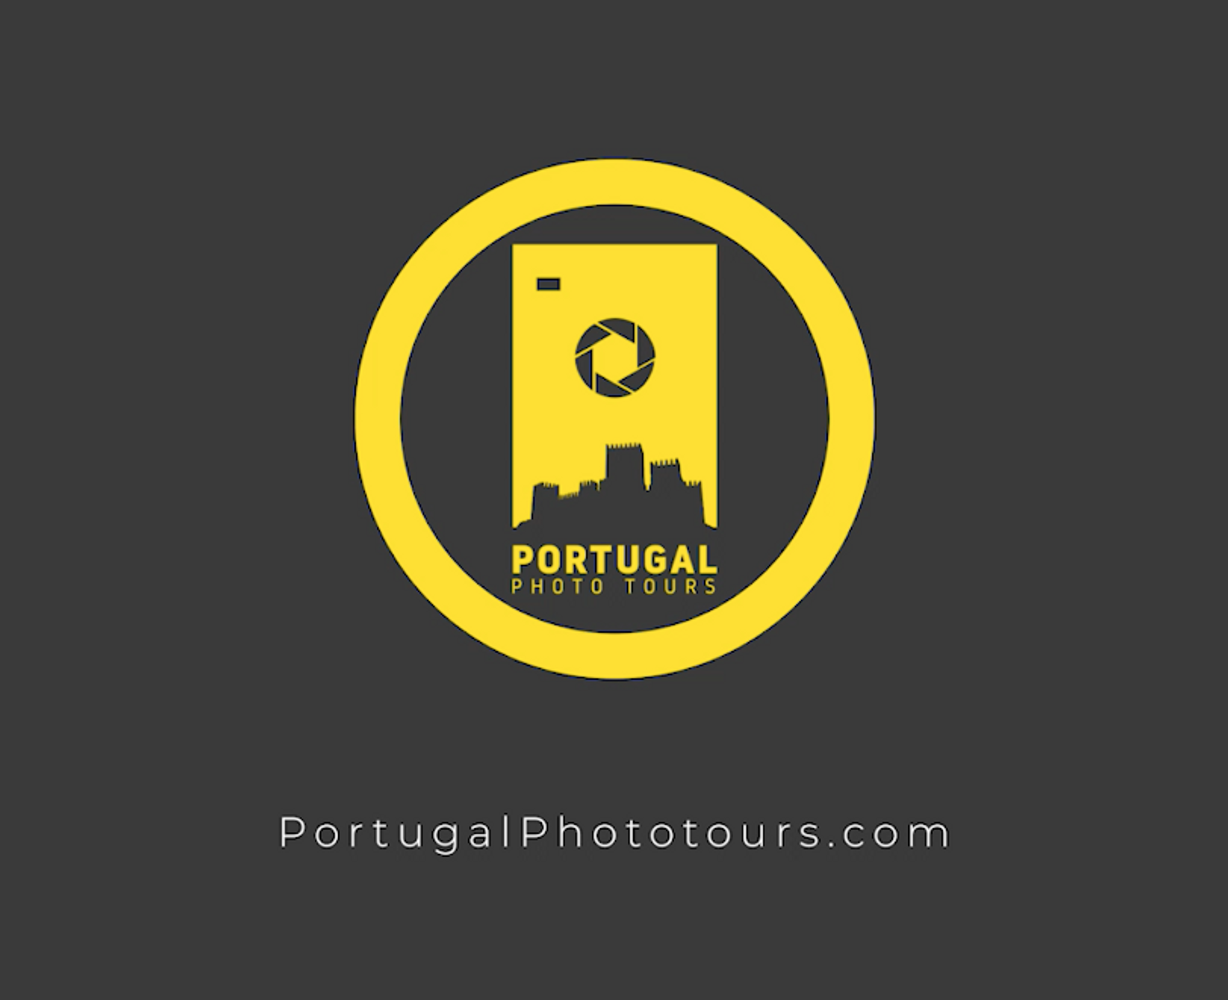 Portugal Photo Tours - 17 Day Photo Expedition